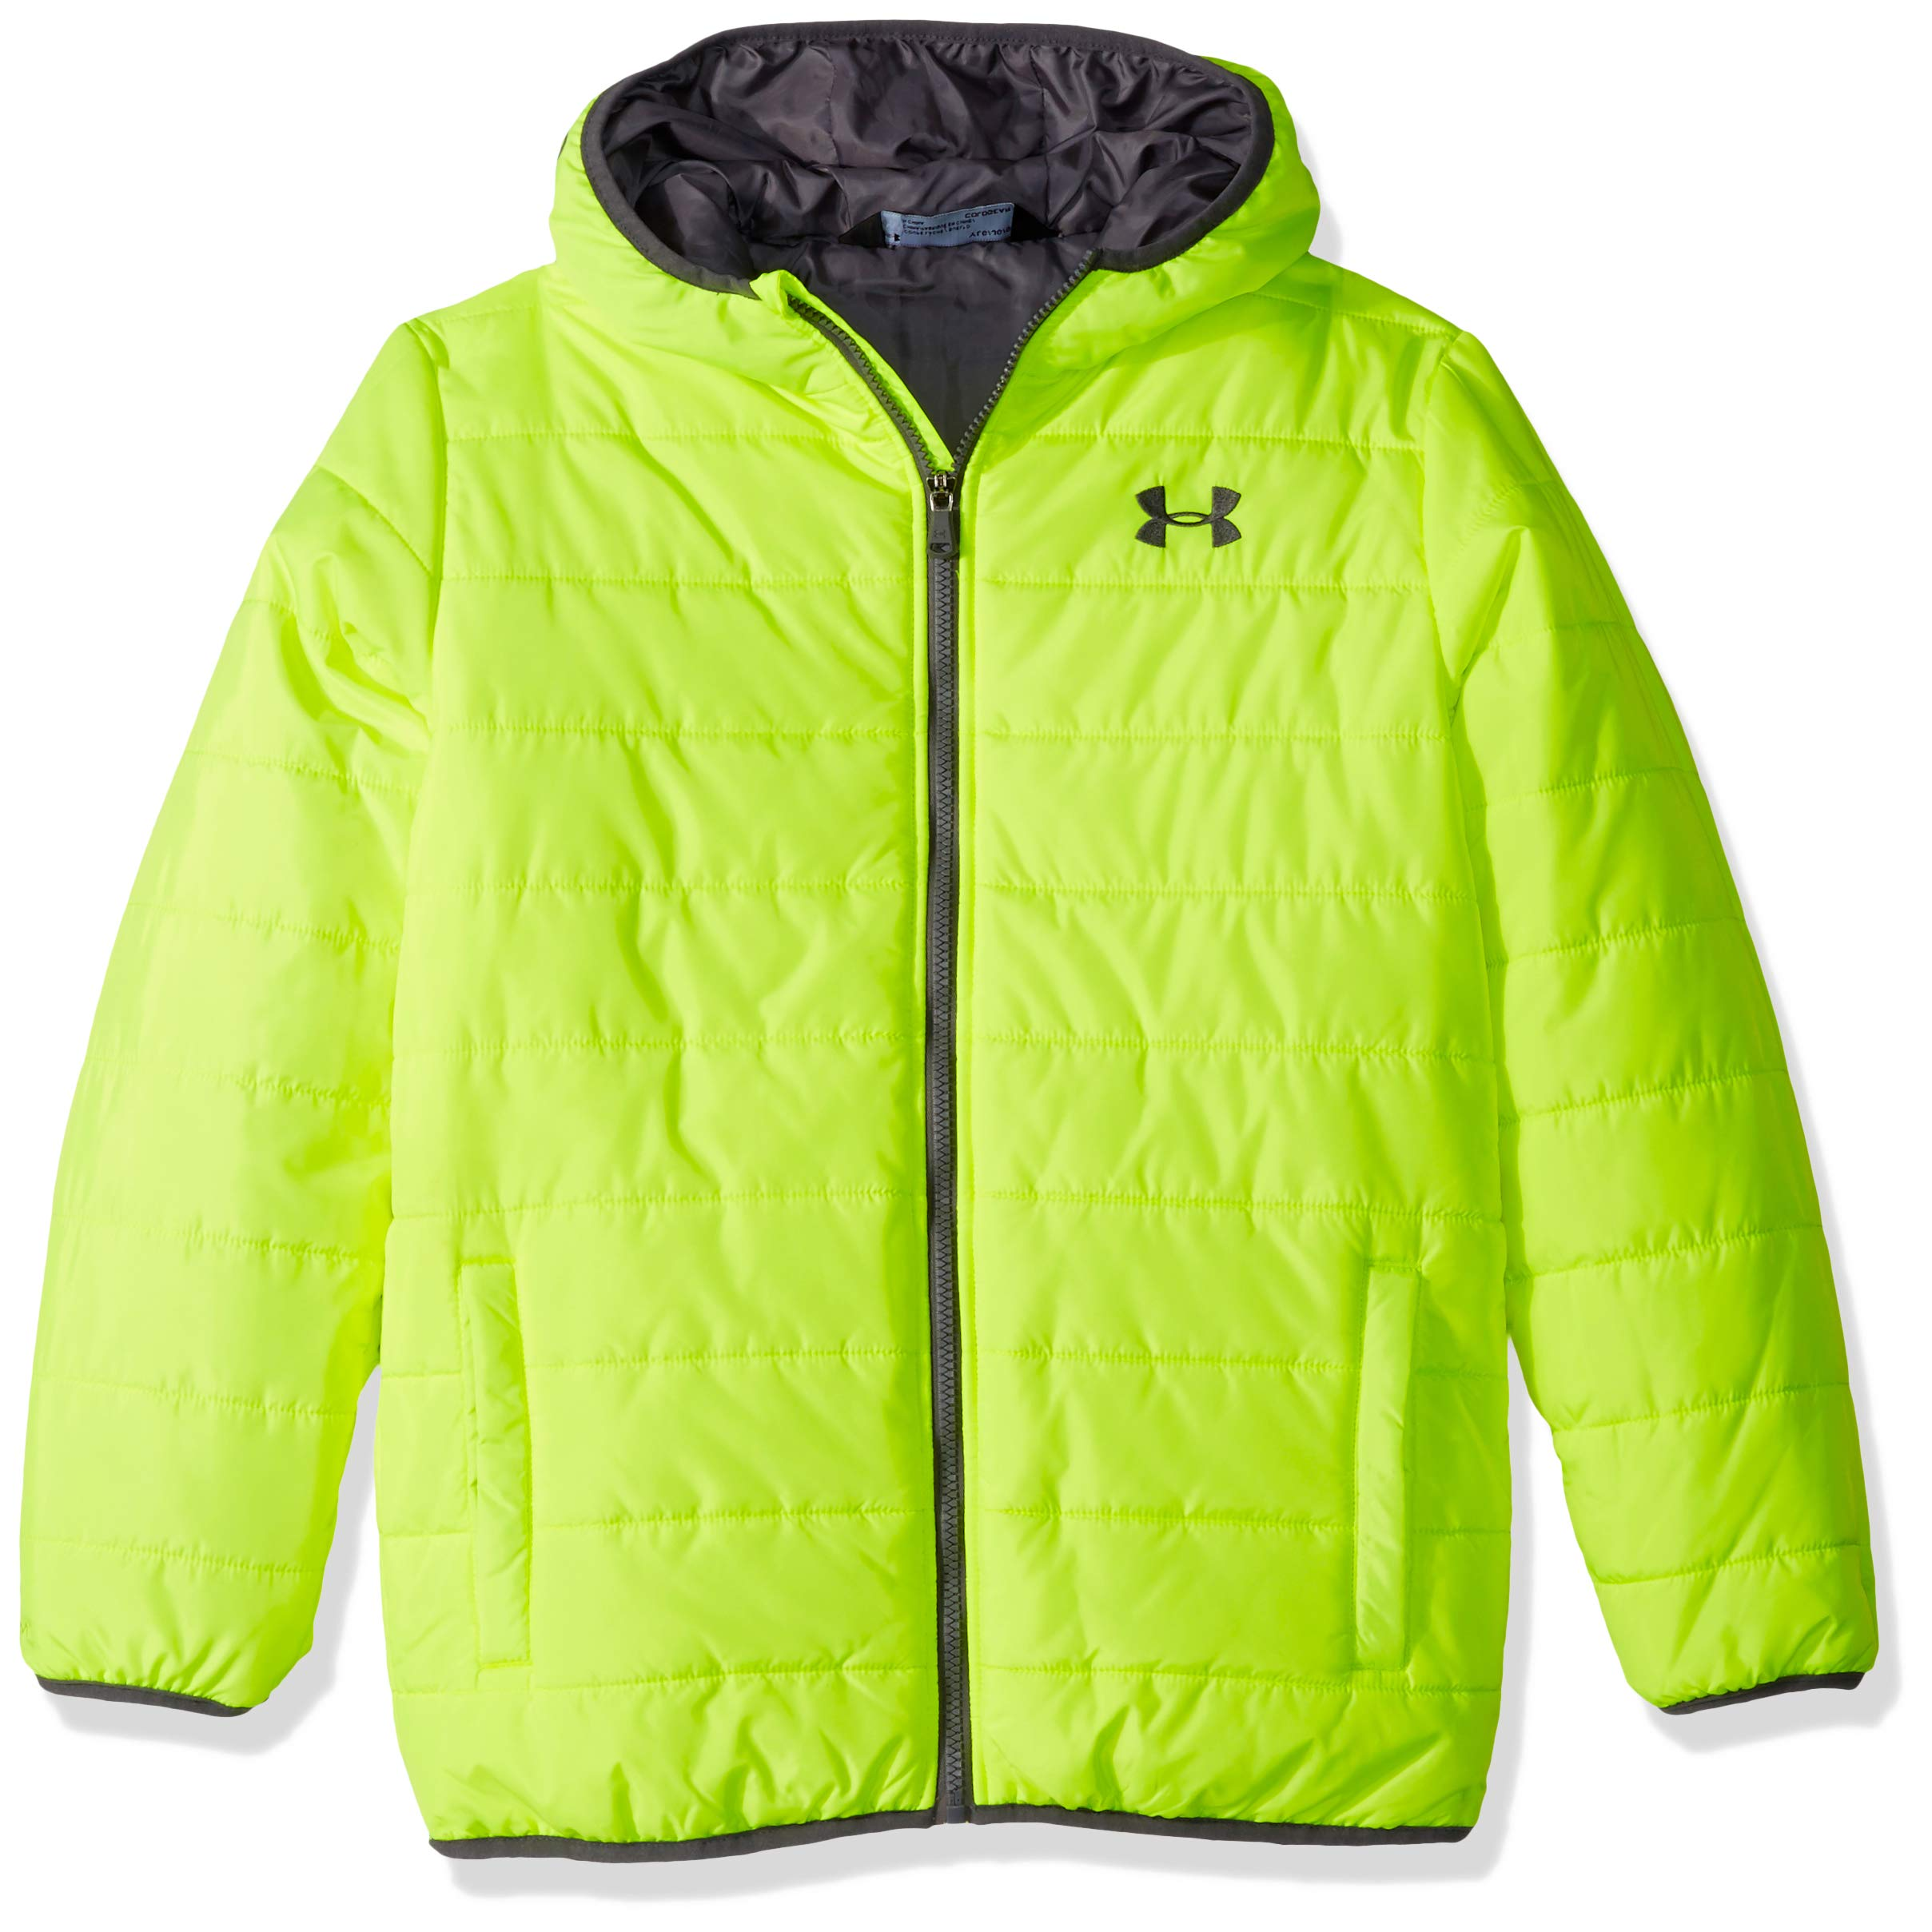 Under Armour Boys' Toddler Pronto Puffer Jacket, hi gh/vis Yellow 4T